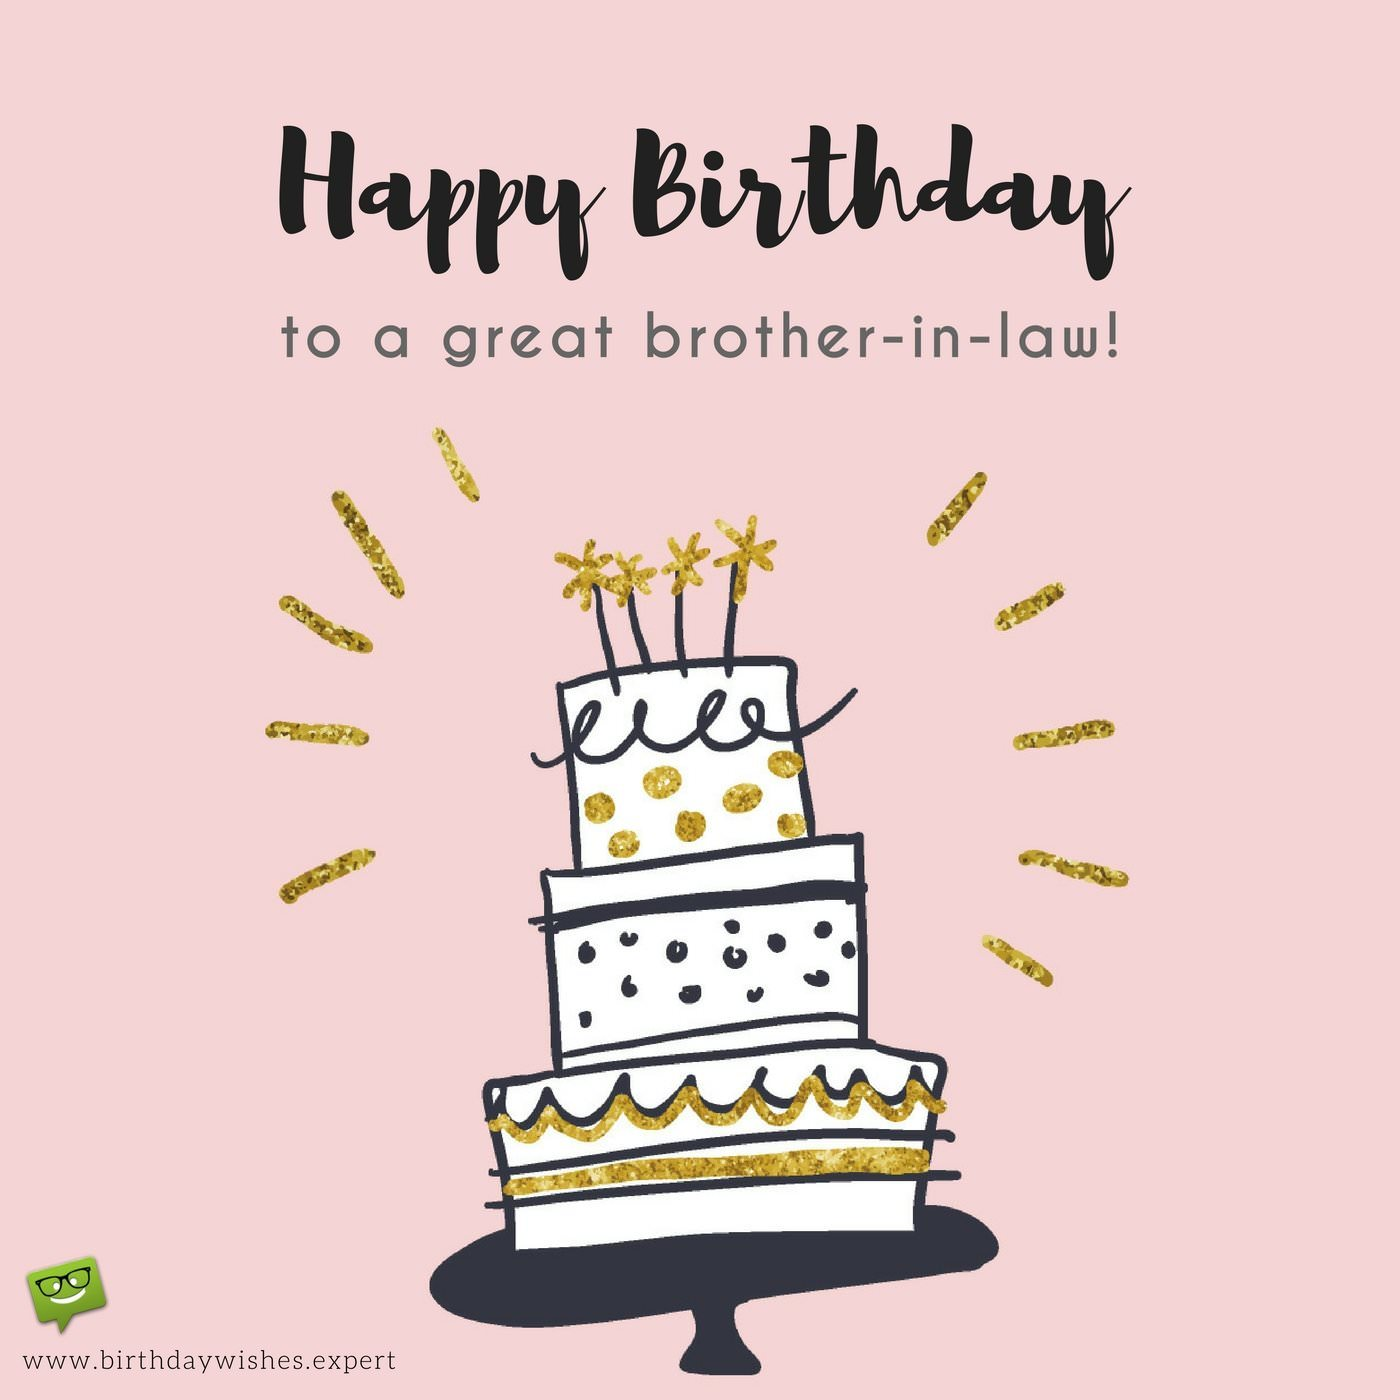 happy birthday brother in law meme ; Happy-Birthday-to-a-great-brother-in-law